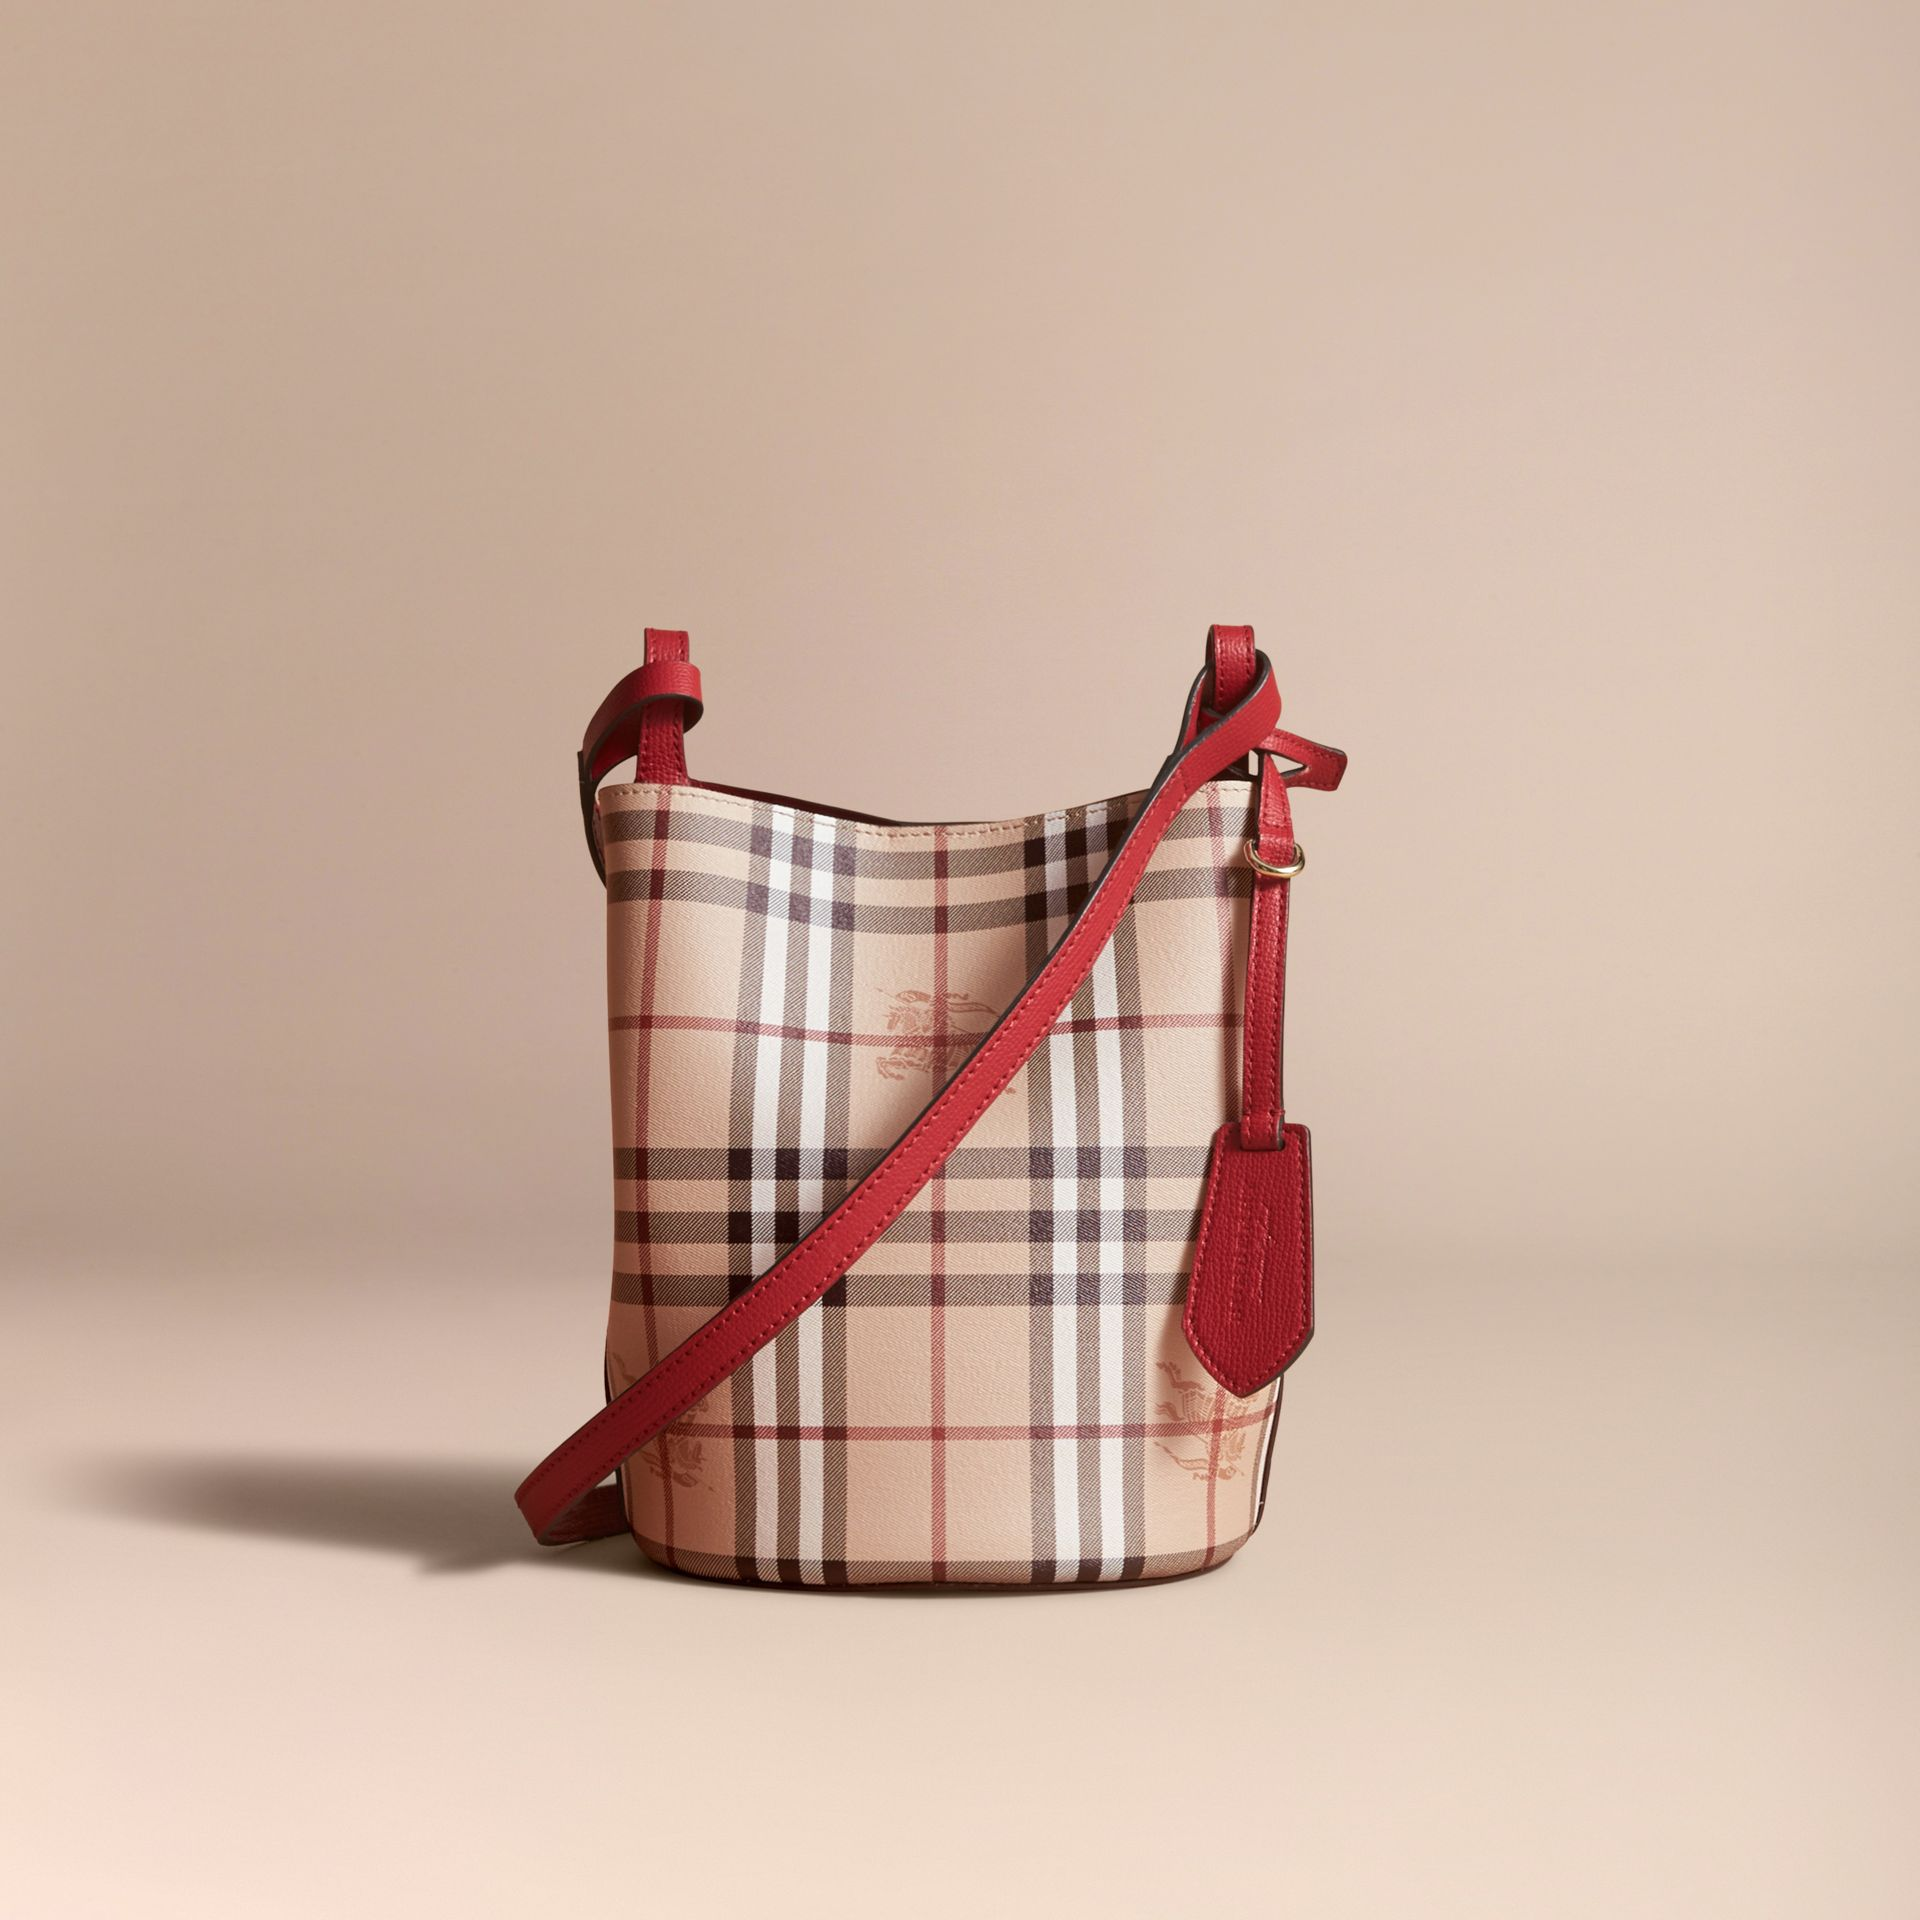 Leather and Haymarket Check Crossbody Bucket Bag in Poppy Red - Women | Burberry - gallery image 6